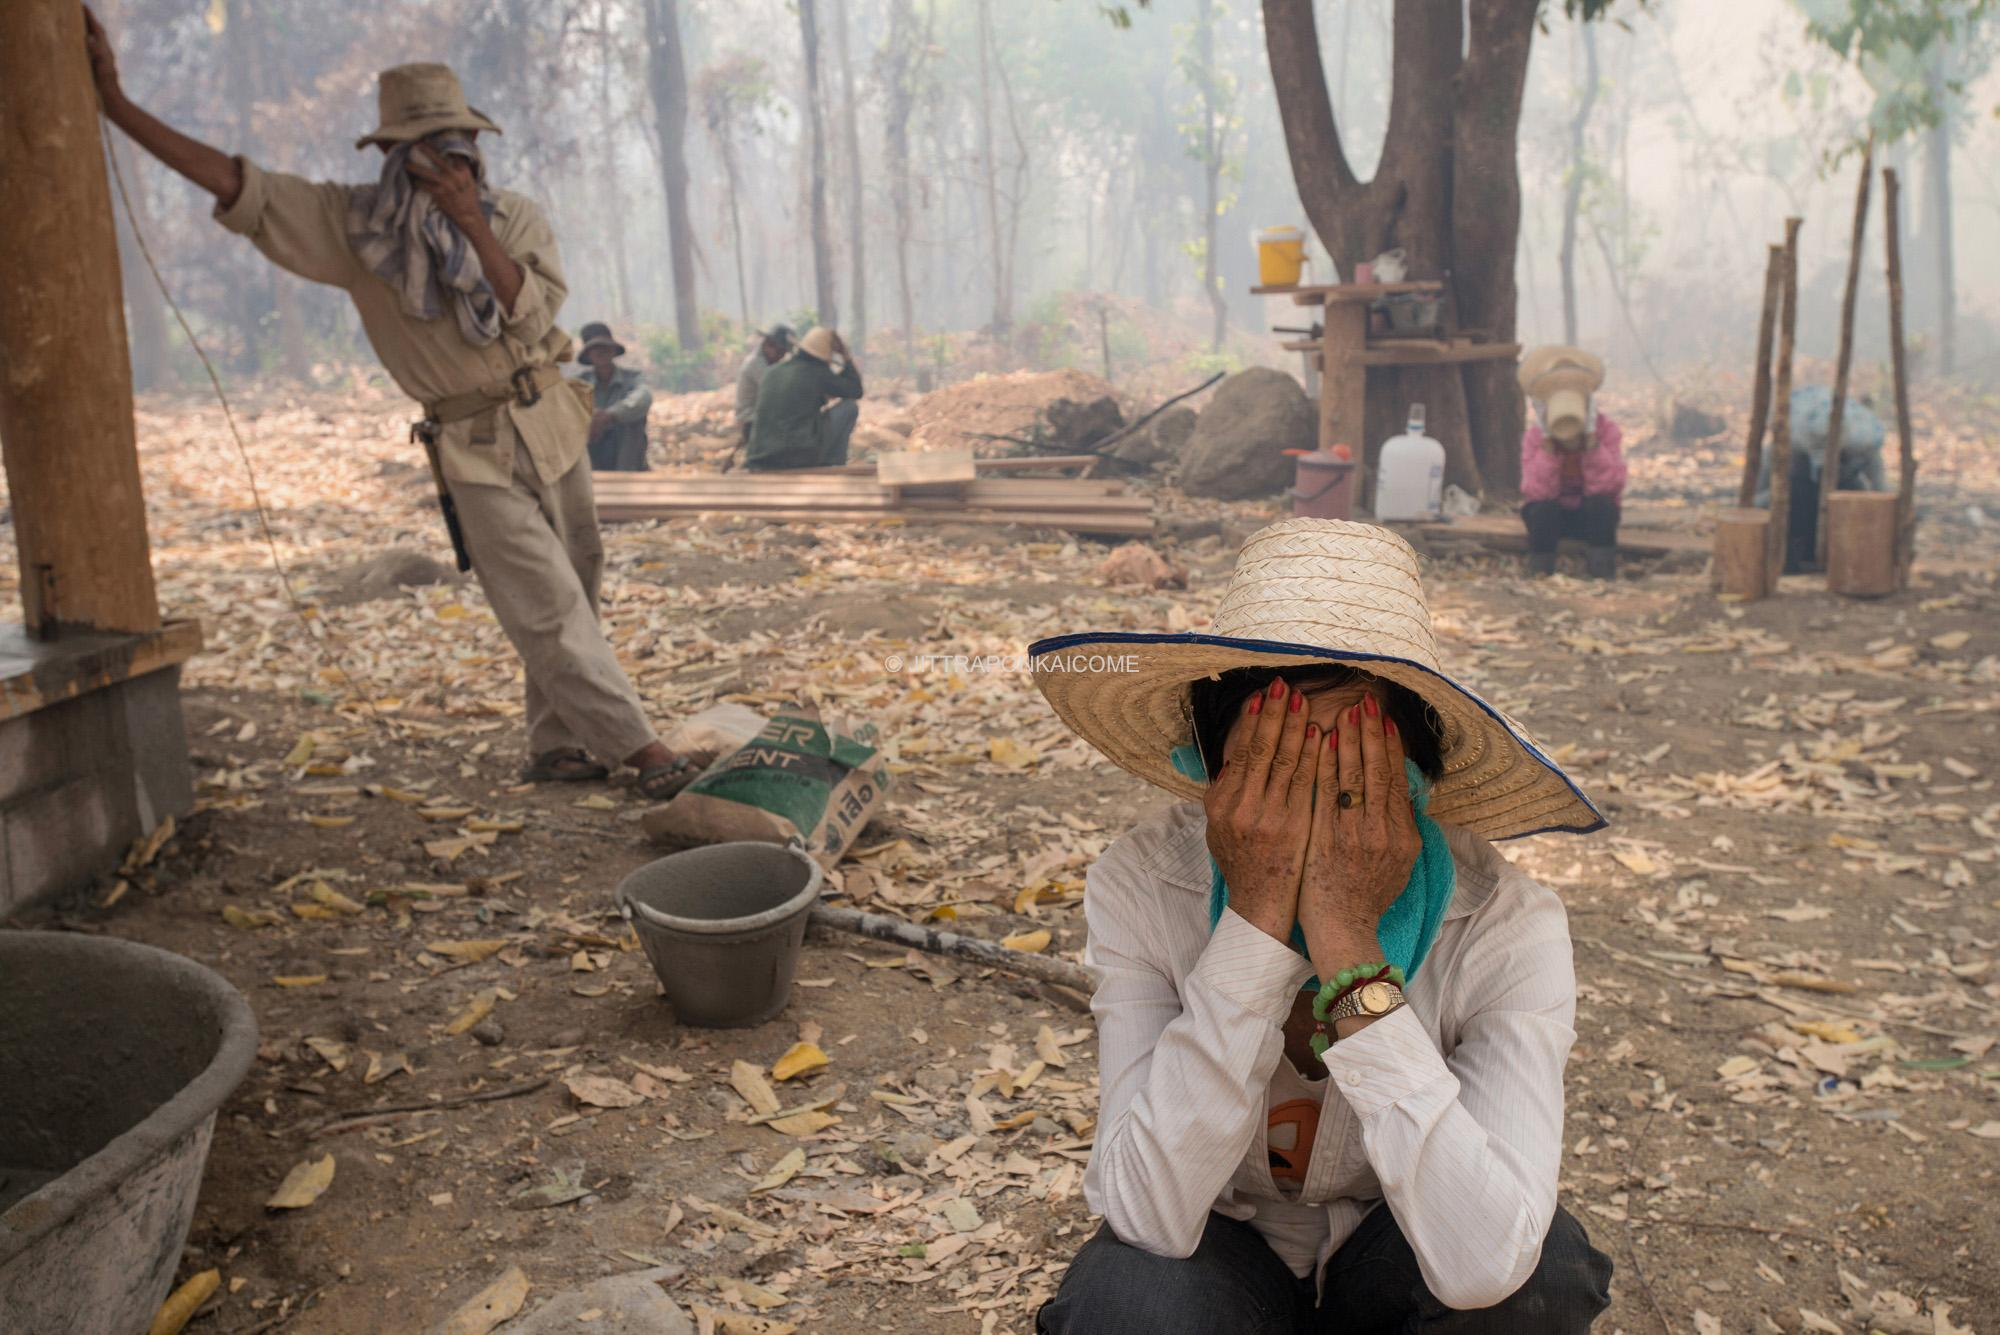 Wildfire occurs during the day time in a place outside of the city. The nearby areas where labors working are covered in haze. Chiang Mai, Thailand.